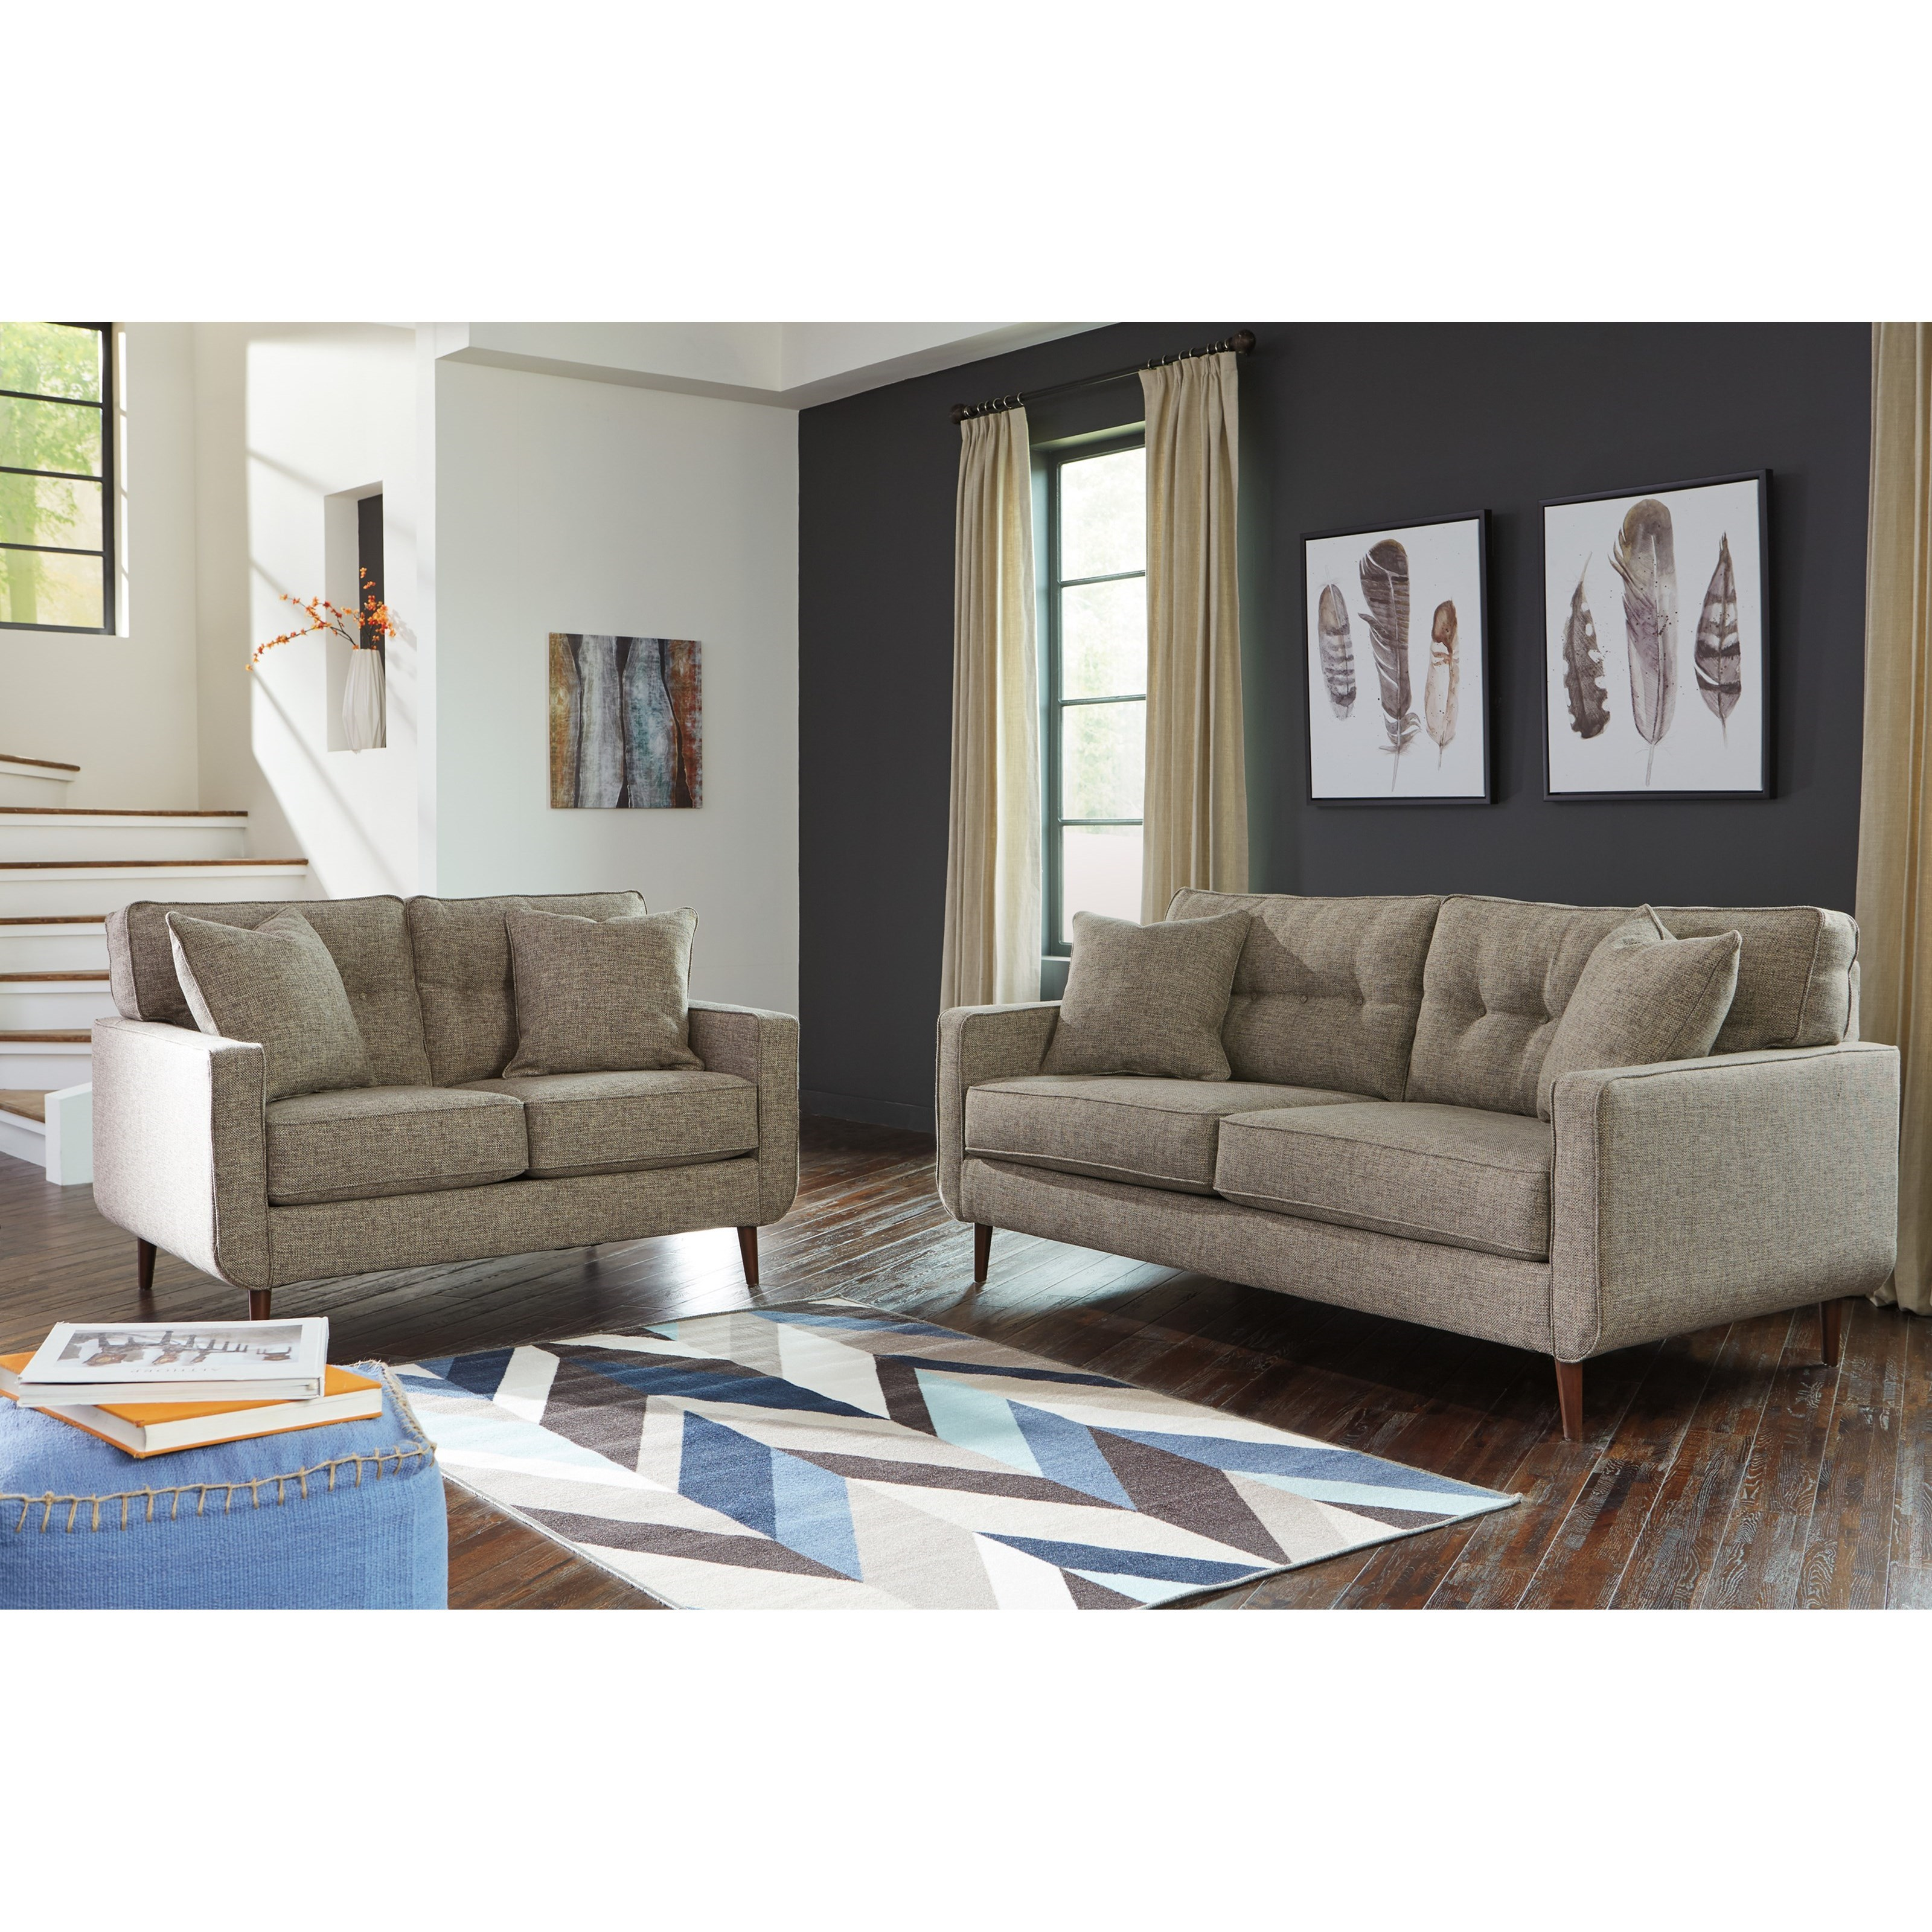 Dahra Stationary Living Room Group by Benchcraft at Miller Waldrop Furniture and Decor